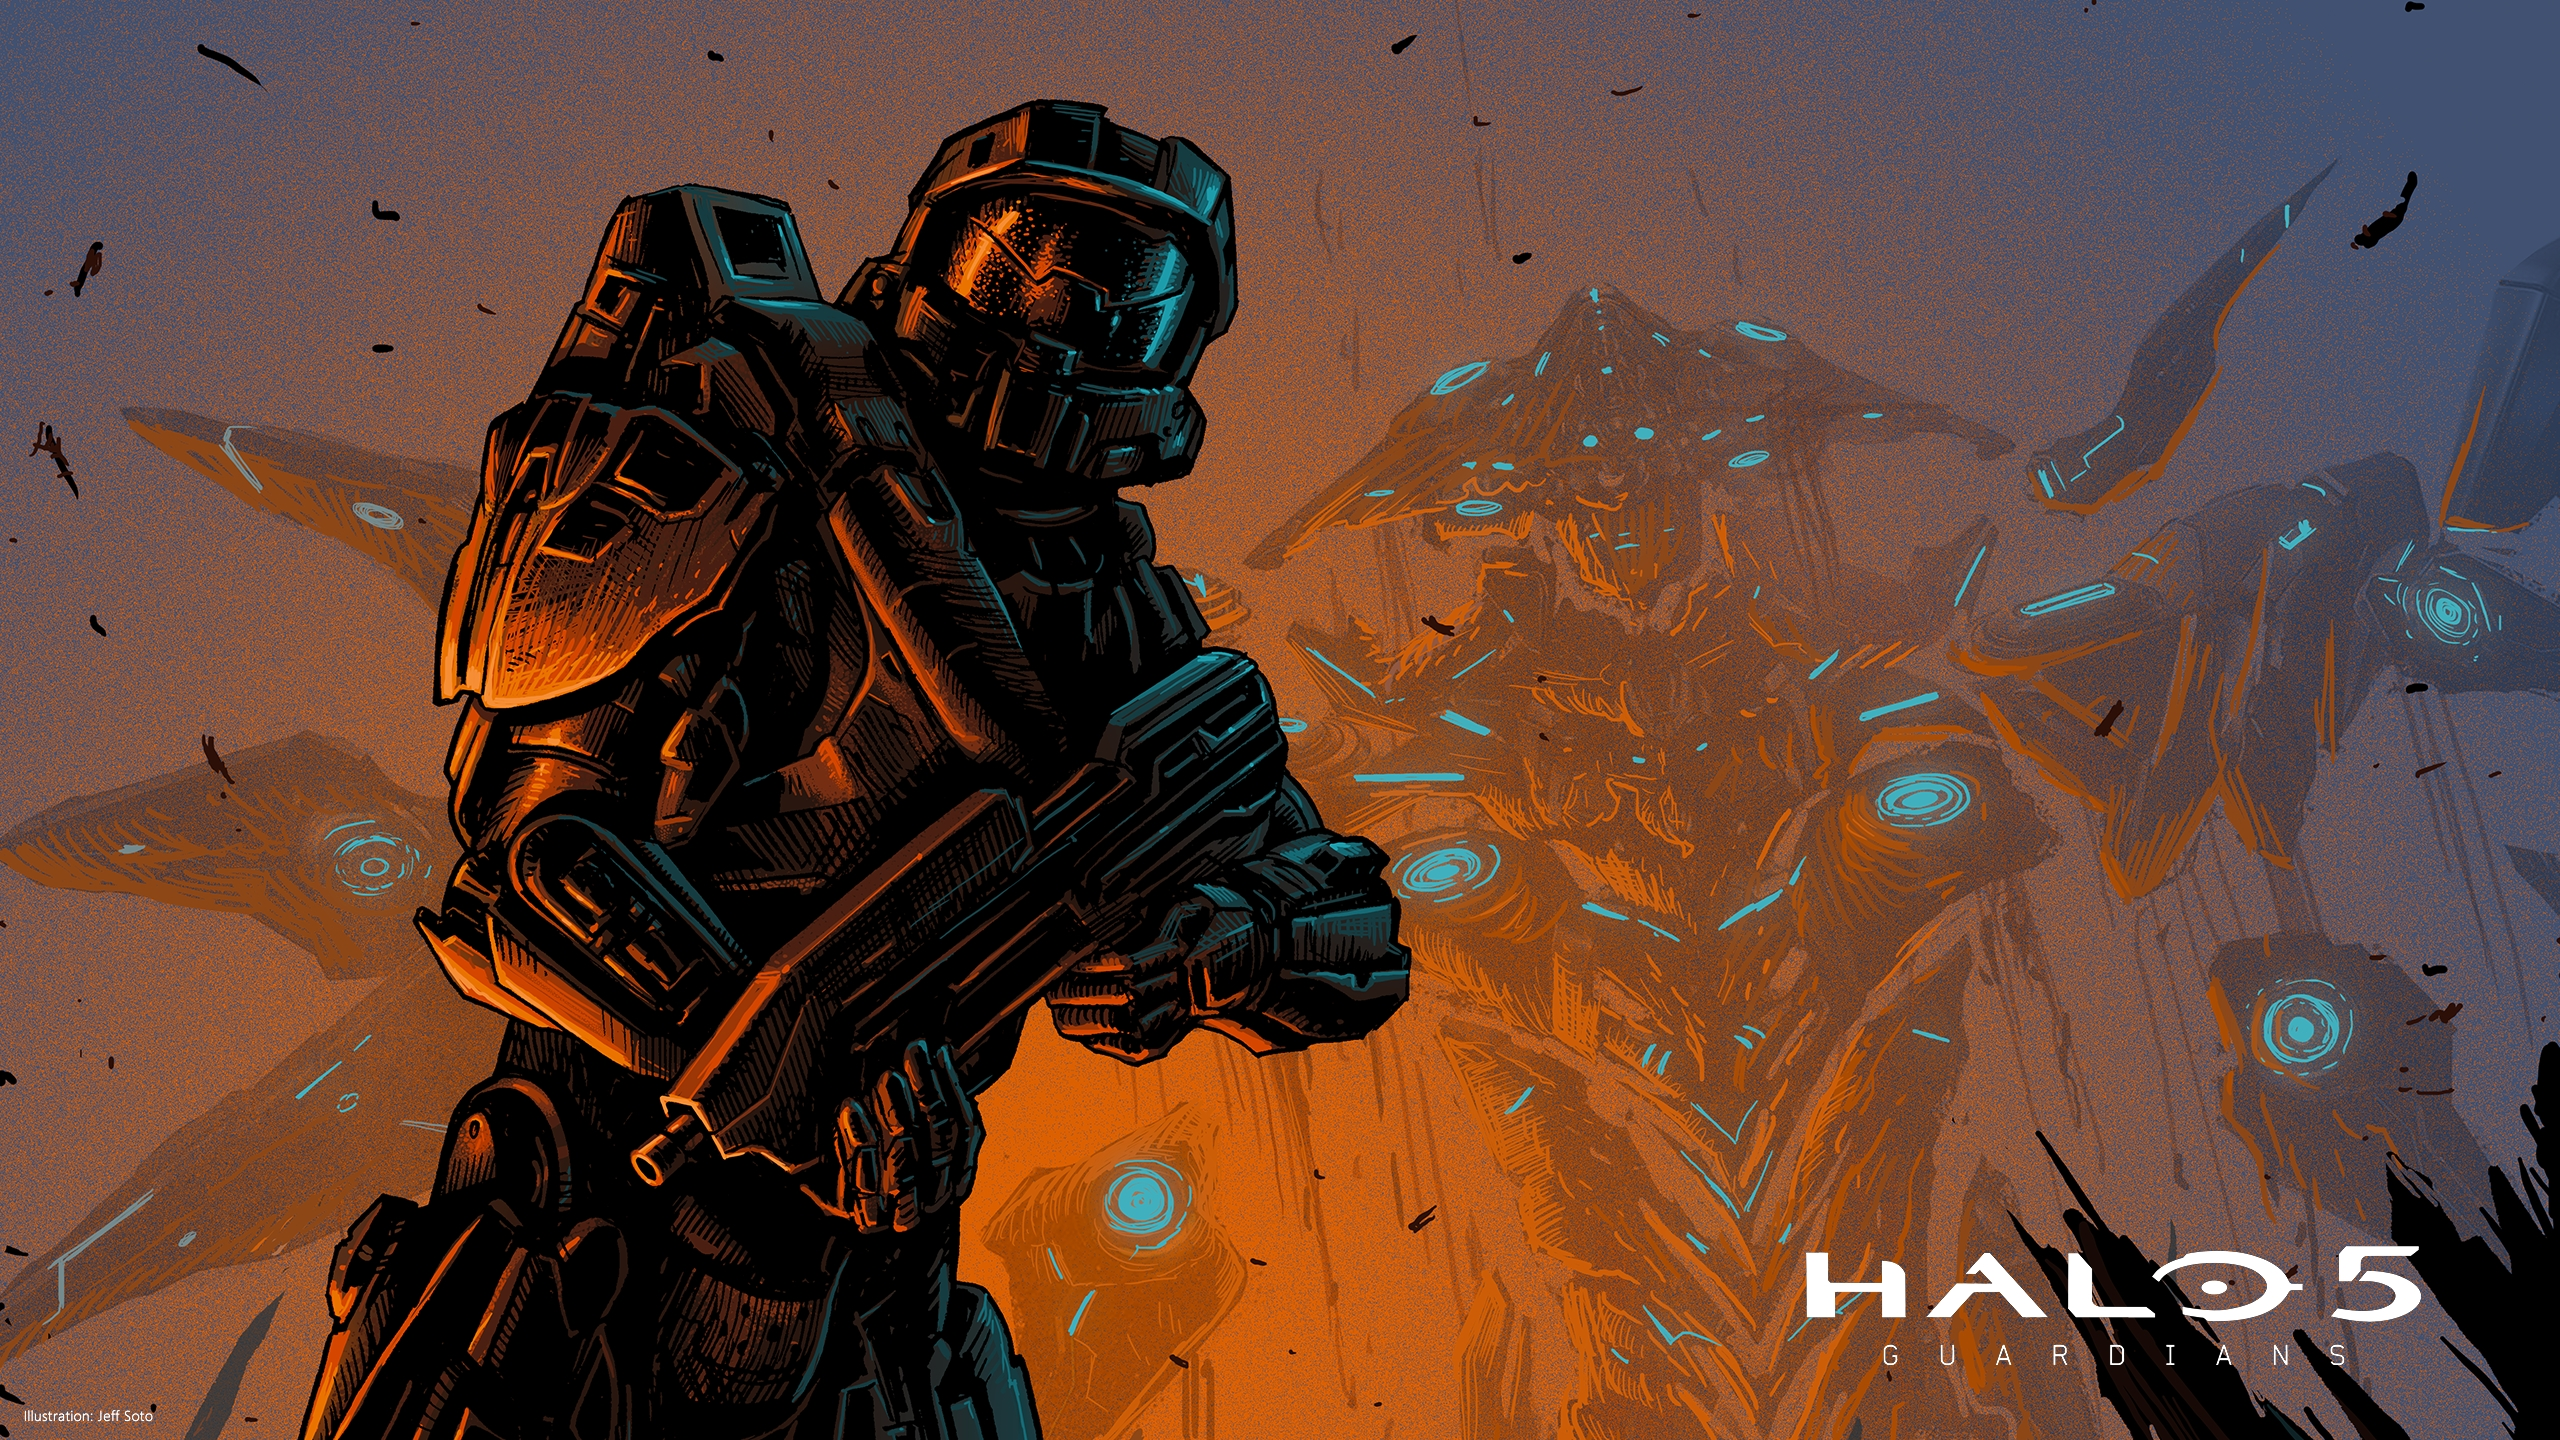 Halo 5 Guardians Master Chief Wallpapers Hd Wallpapers